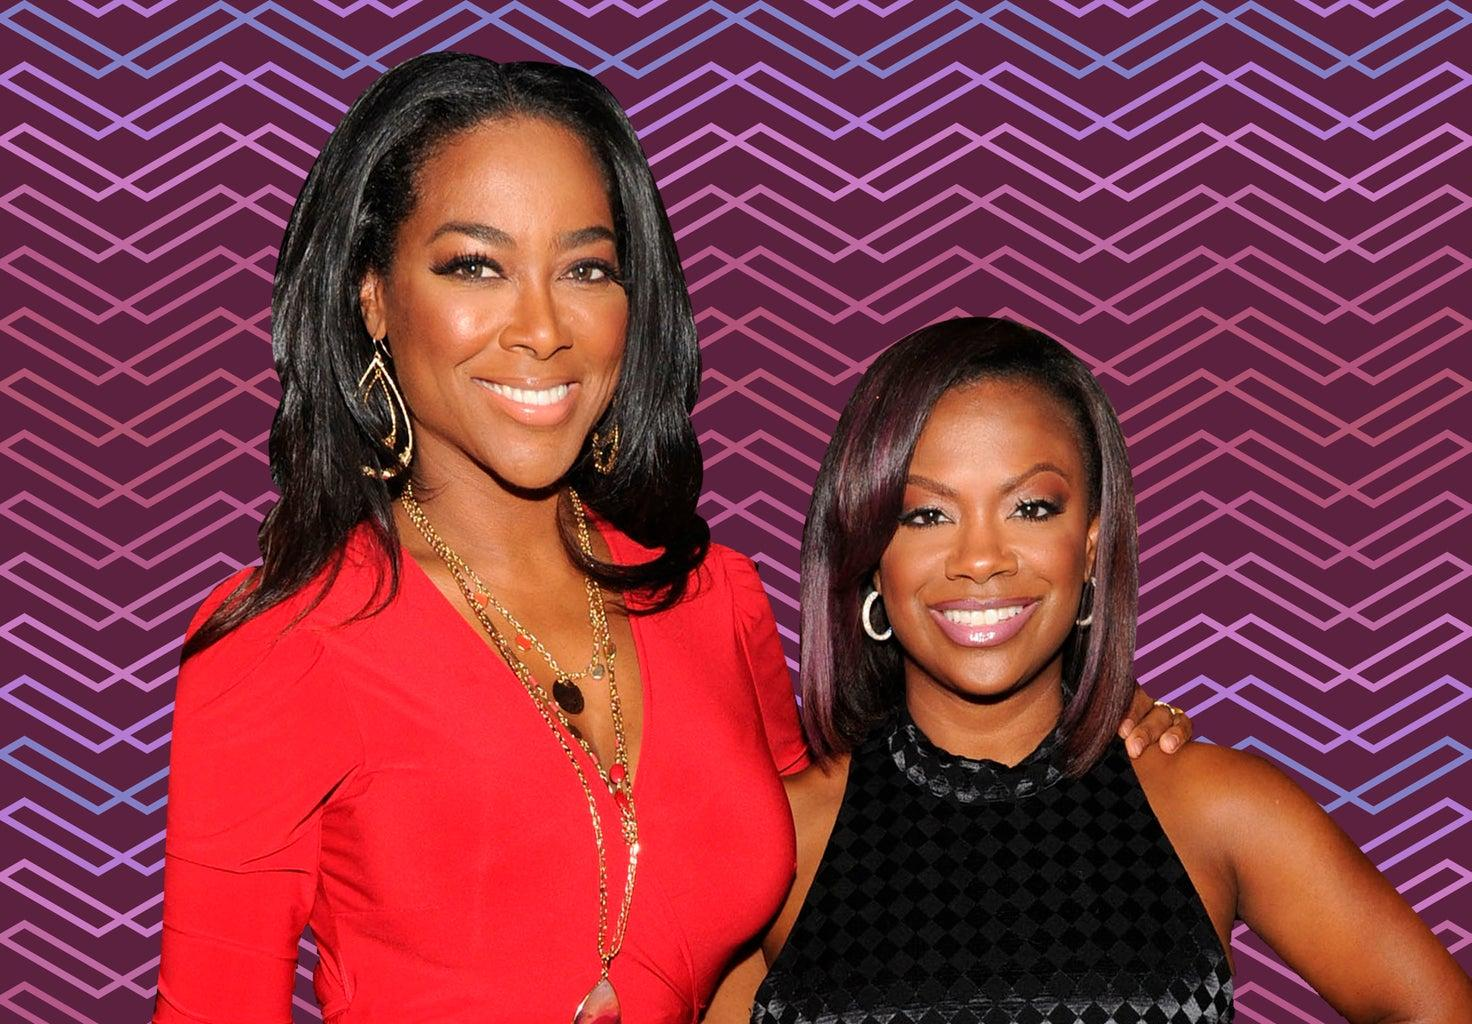 Kandi Burruss Hangs Out With Kenya Moore - Check Out The Gorgeous Ladies